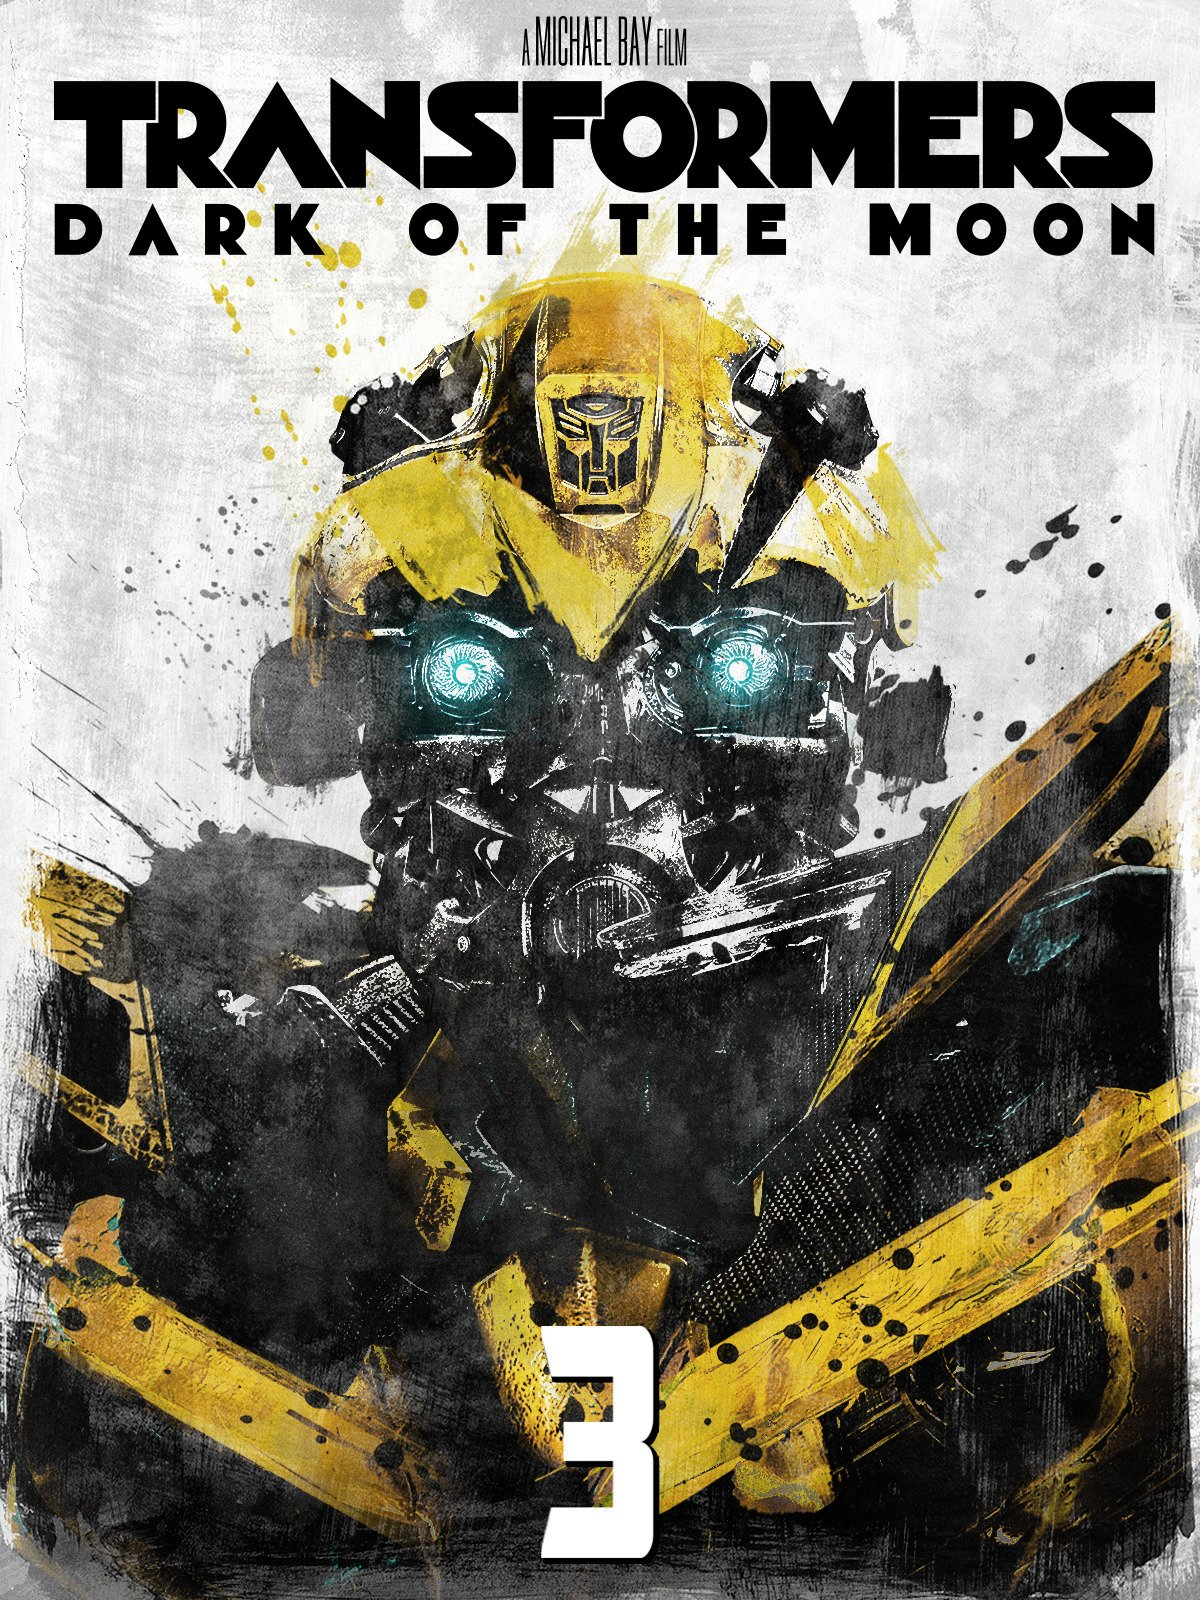 Amazon.com: Watch Transformers: Dark of the Moon | Prime Video